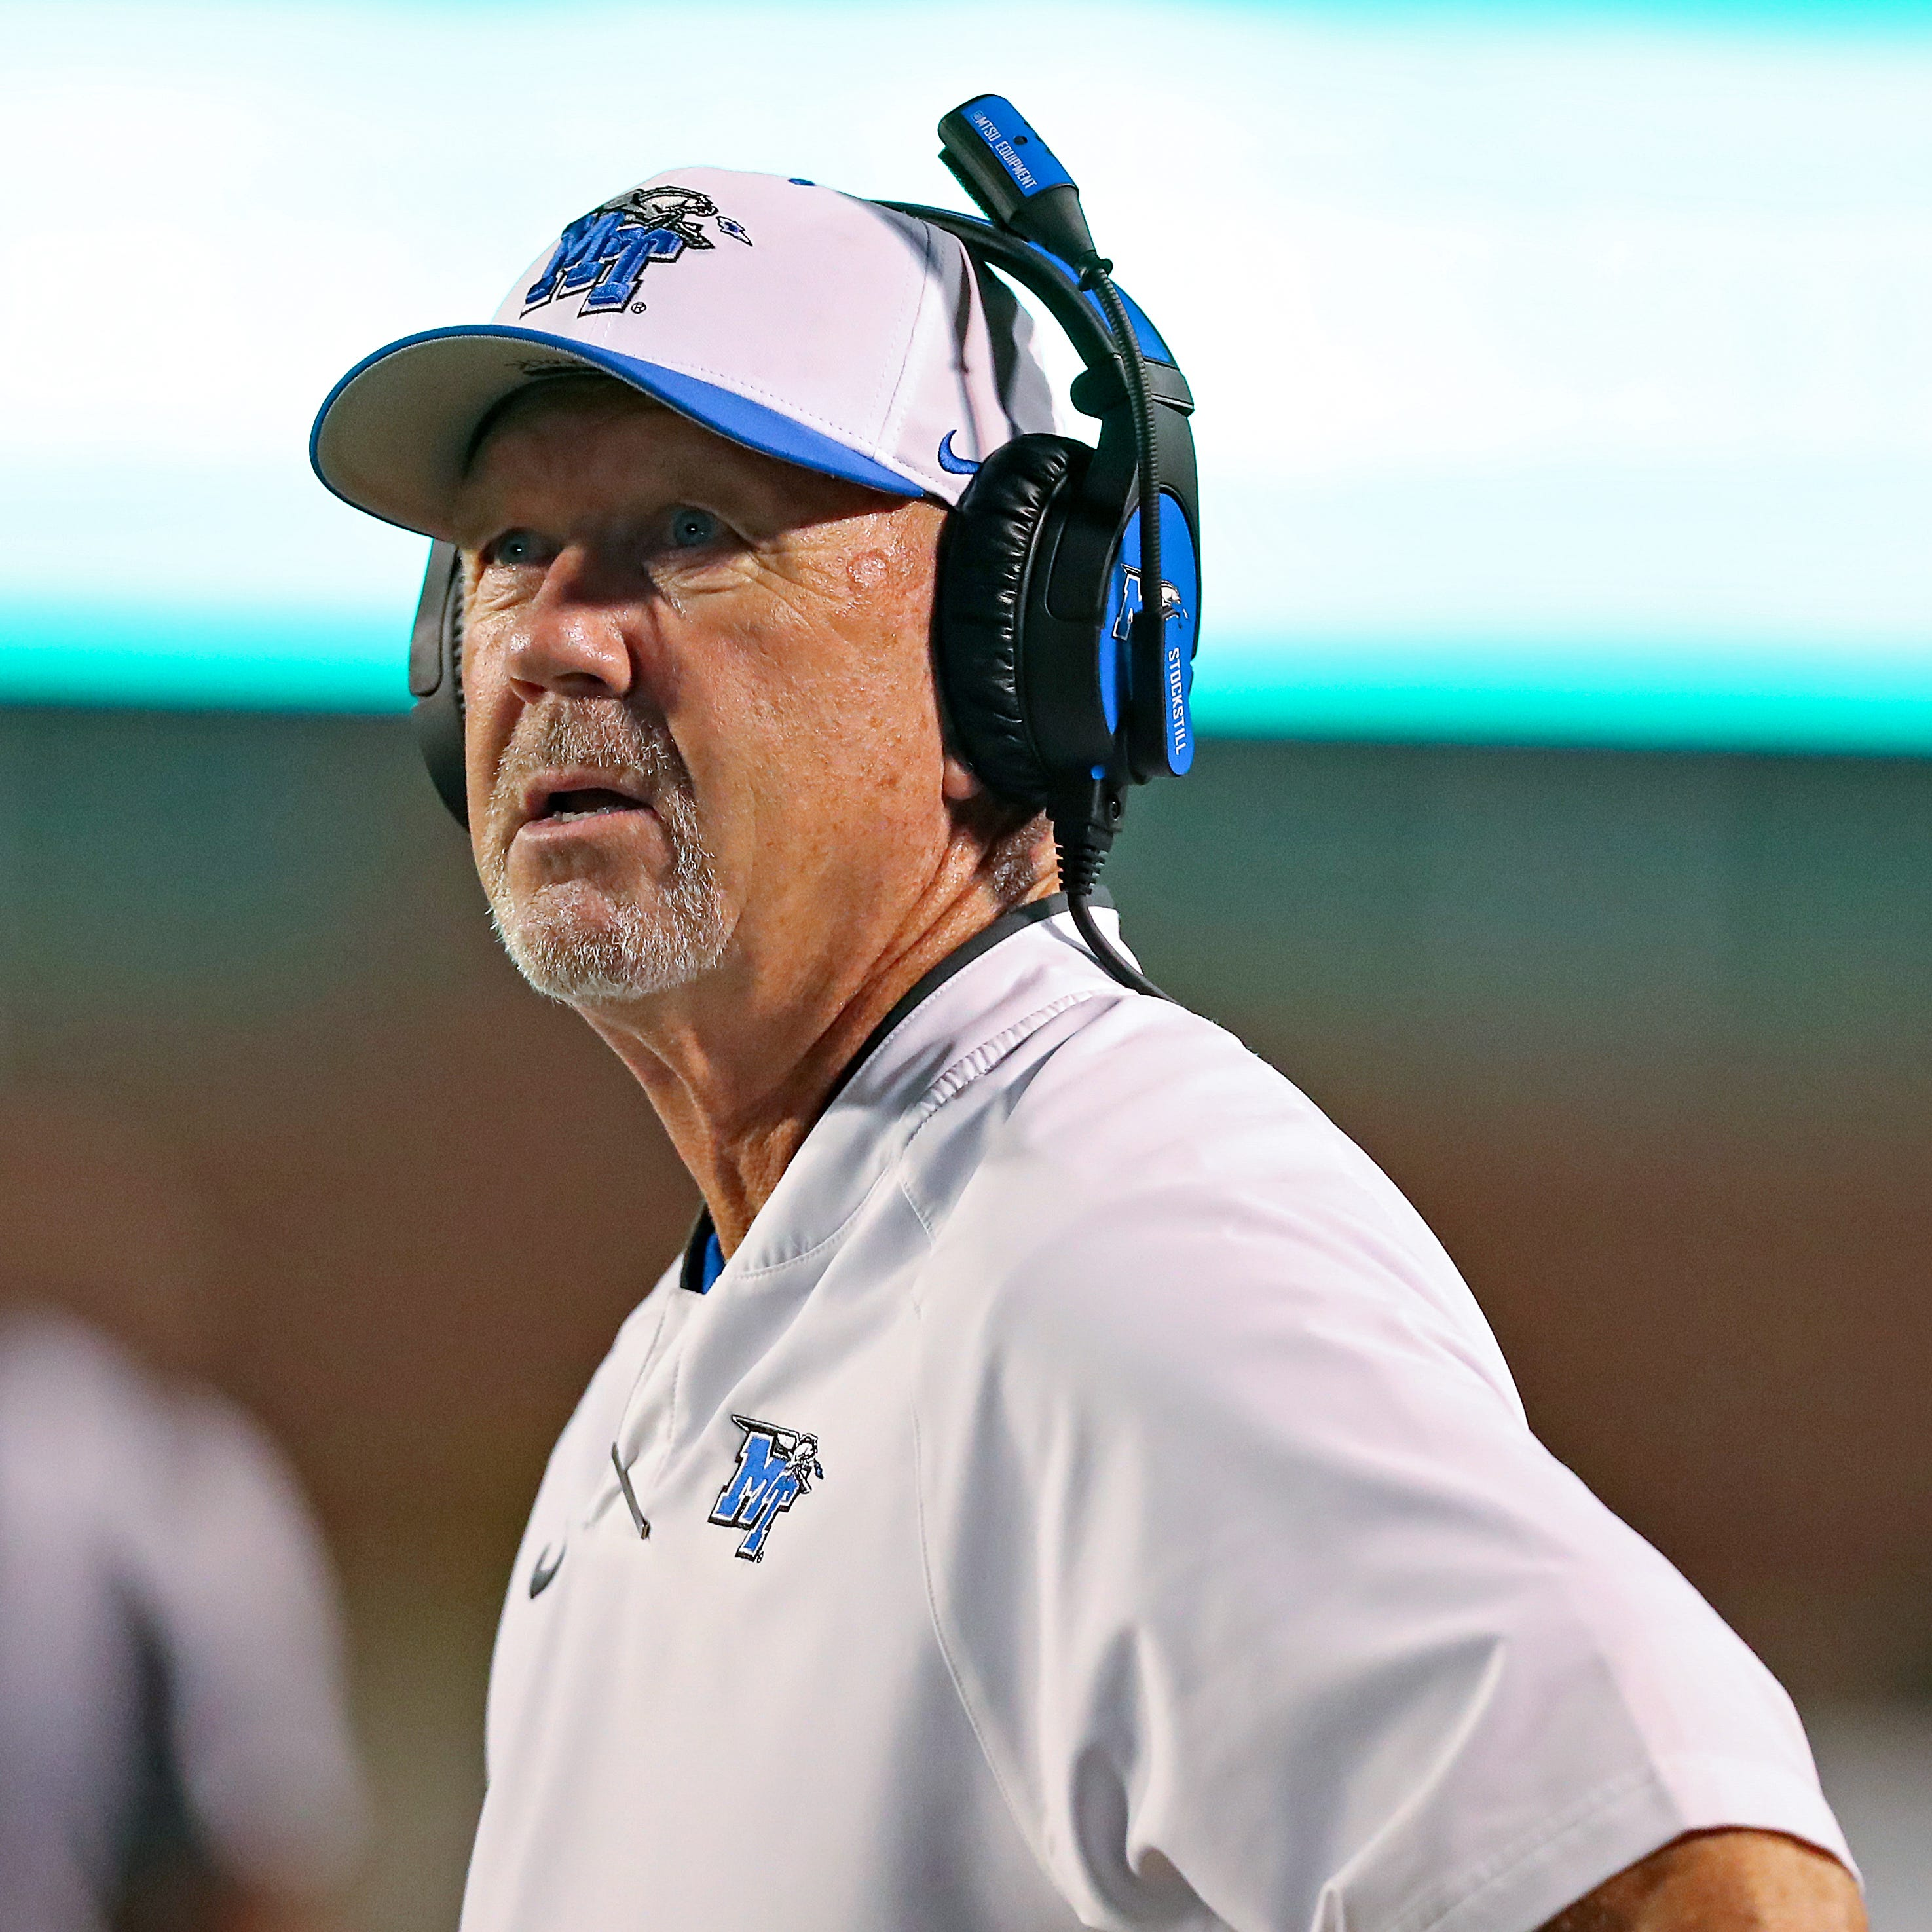 MTSU football says allegations of player physically abused 10 years ago are 'unfounded'